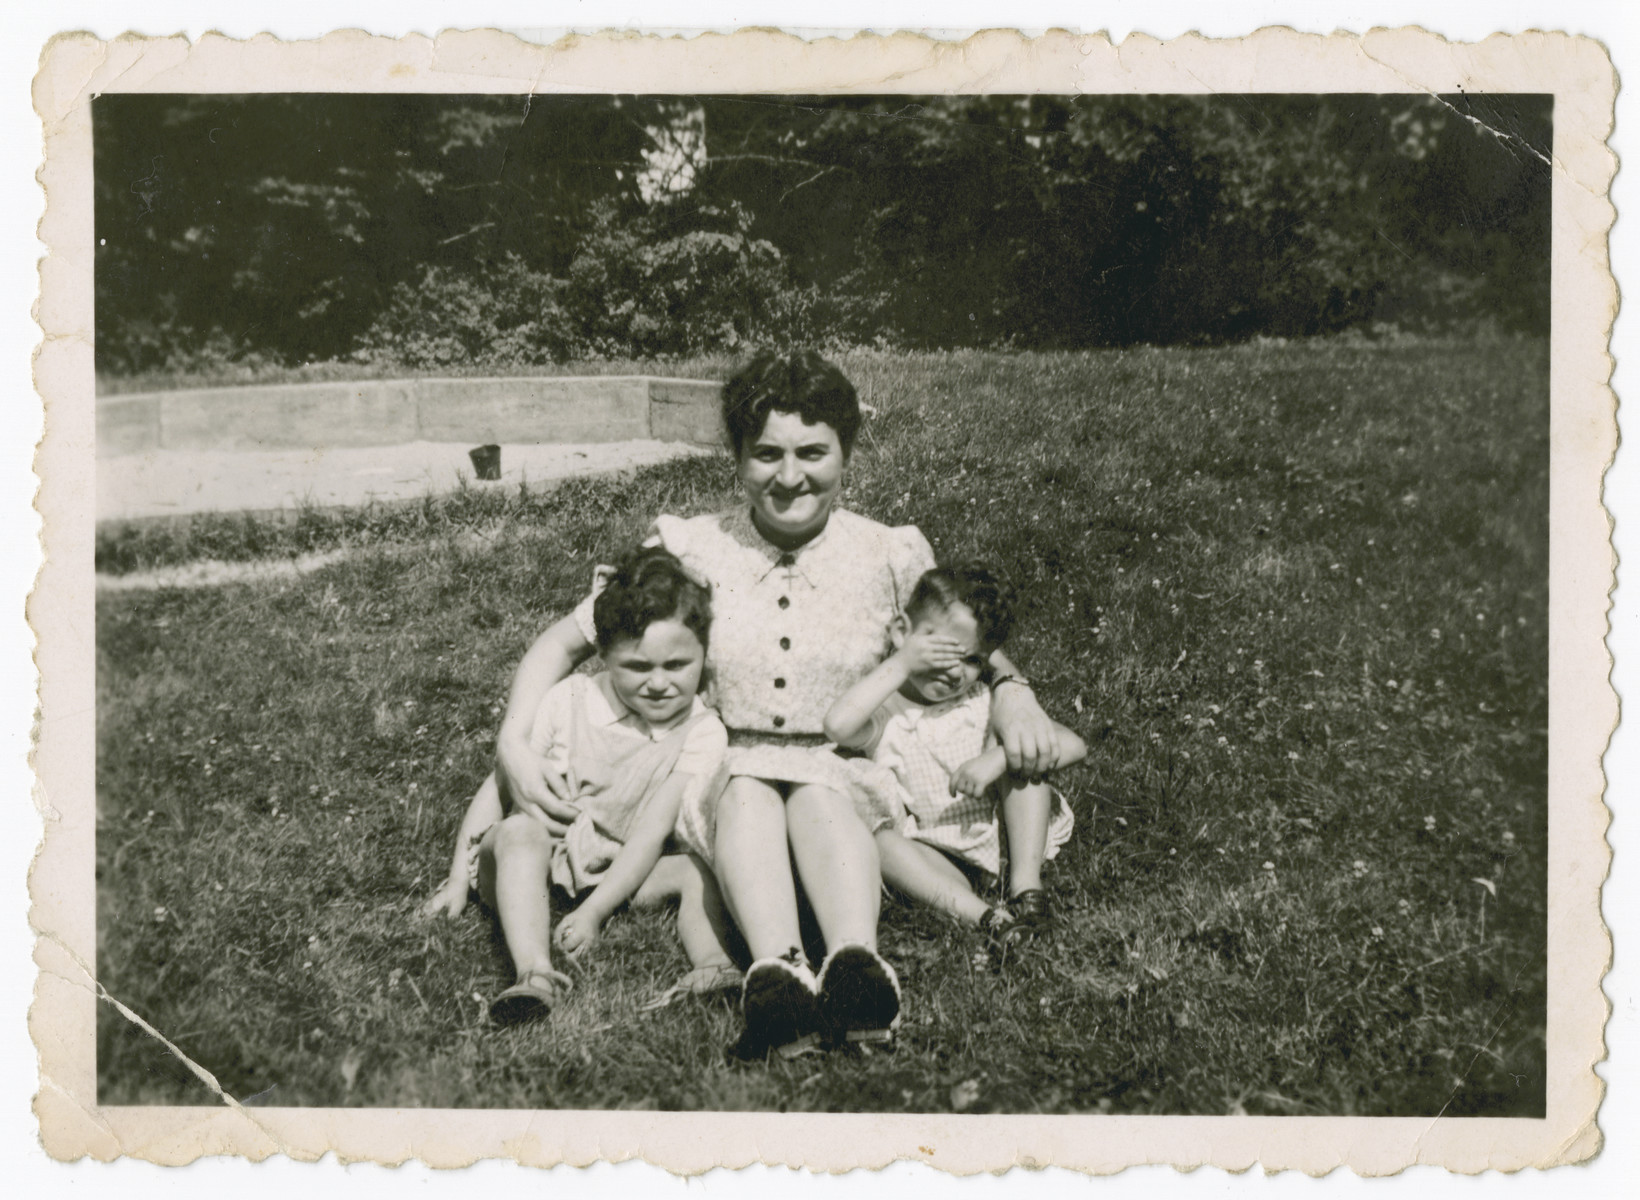 Frymetta Hochglaube poses outside with her two children at the Red Castle in Linden, outside of Brussels, during a rare visit.